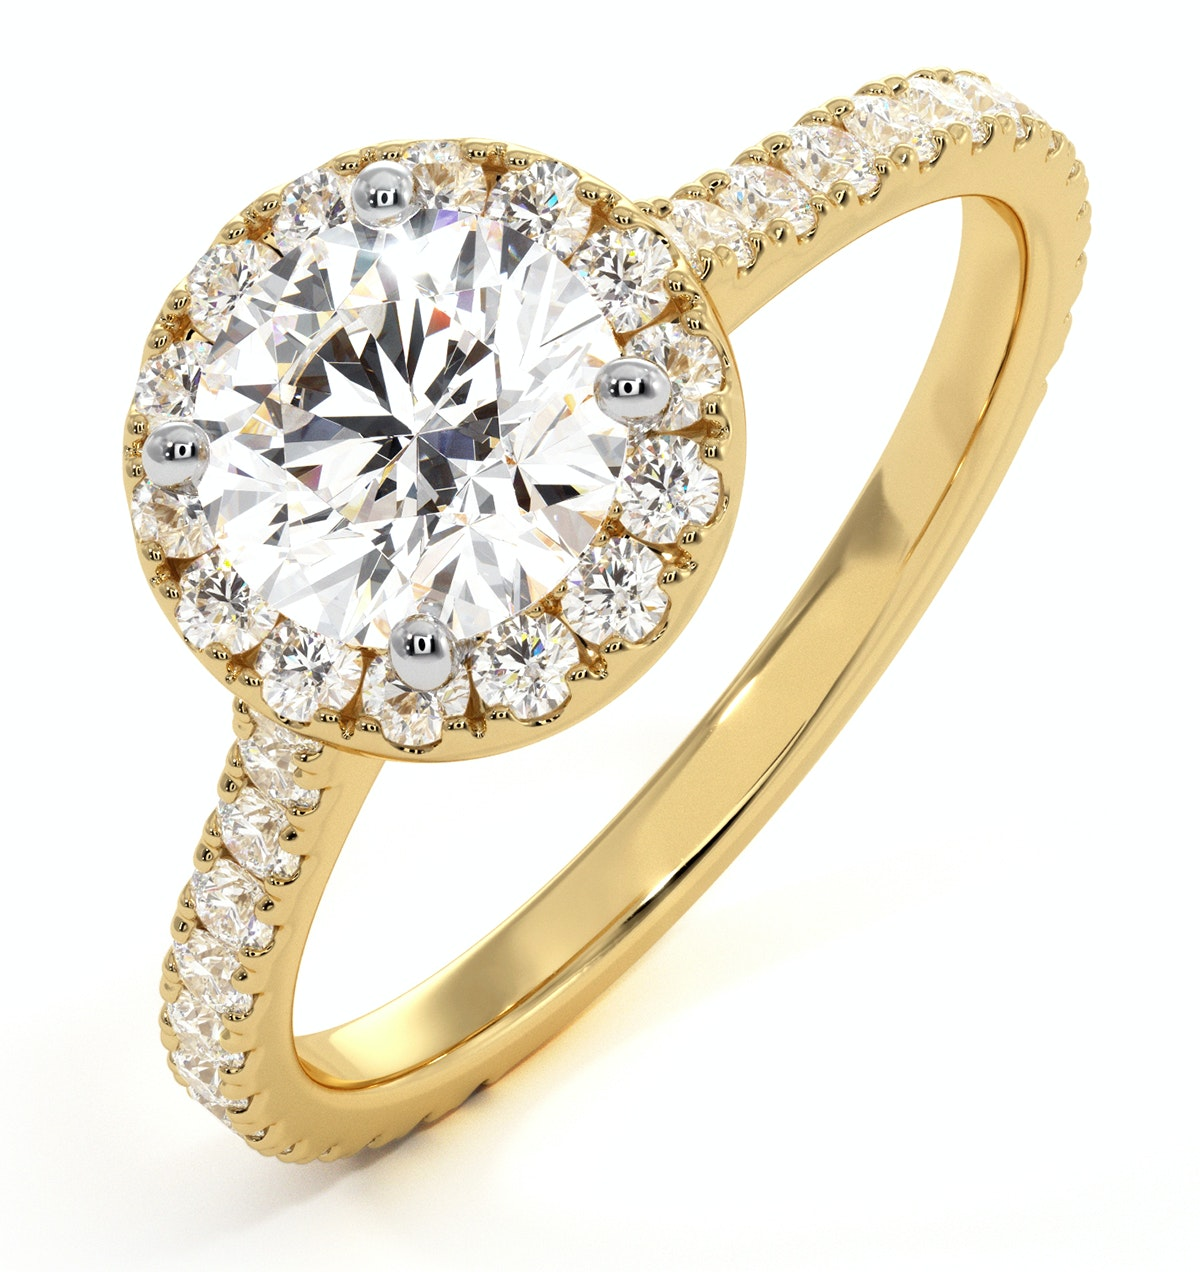 Reina GIA Diamond Halo Engagement Ring in 18K Gold 1.60ct G/VS1